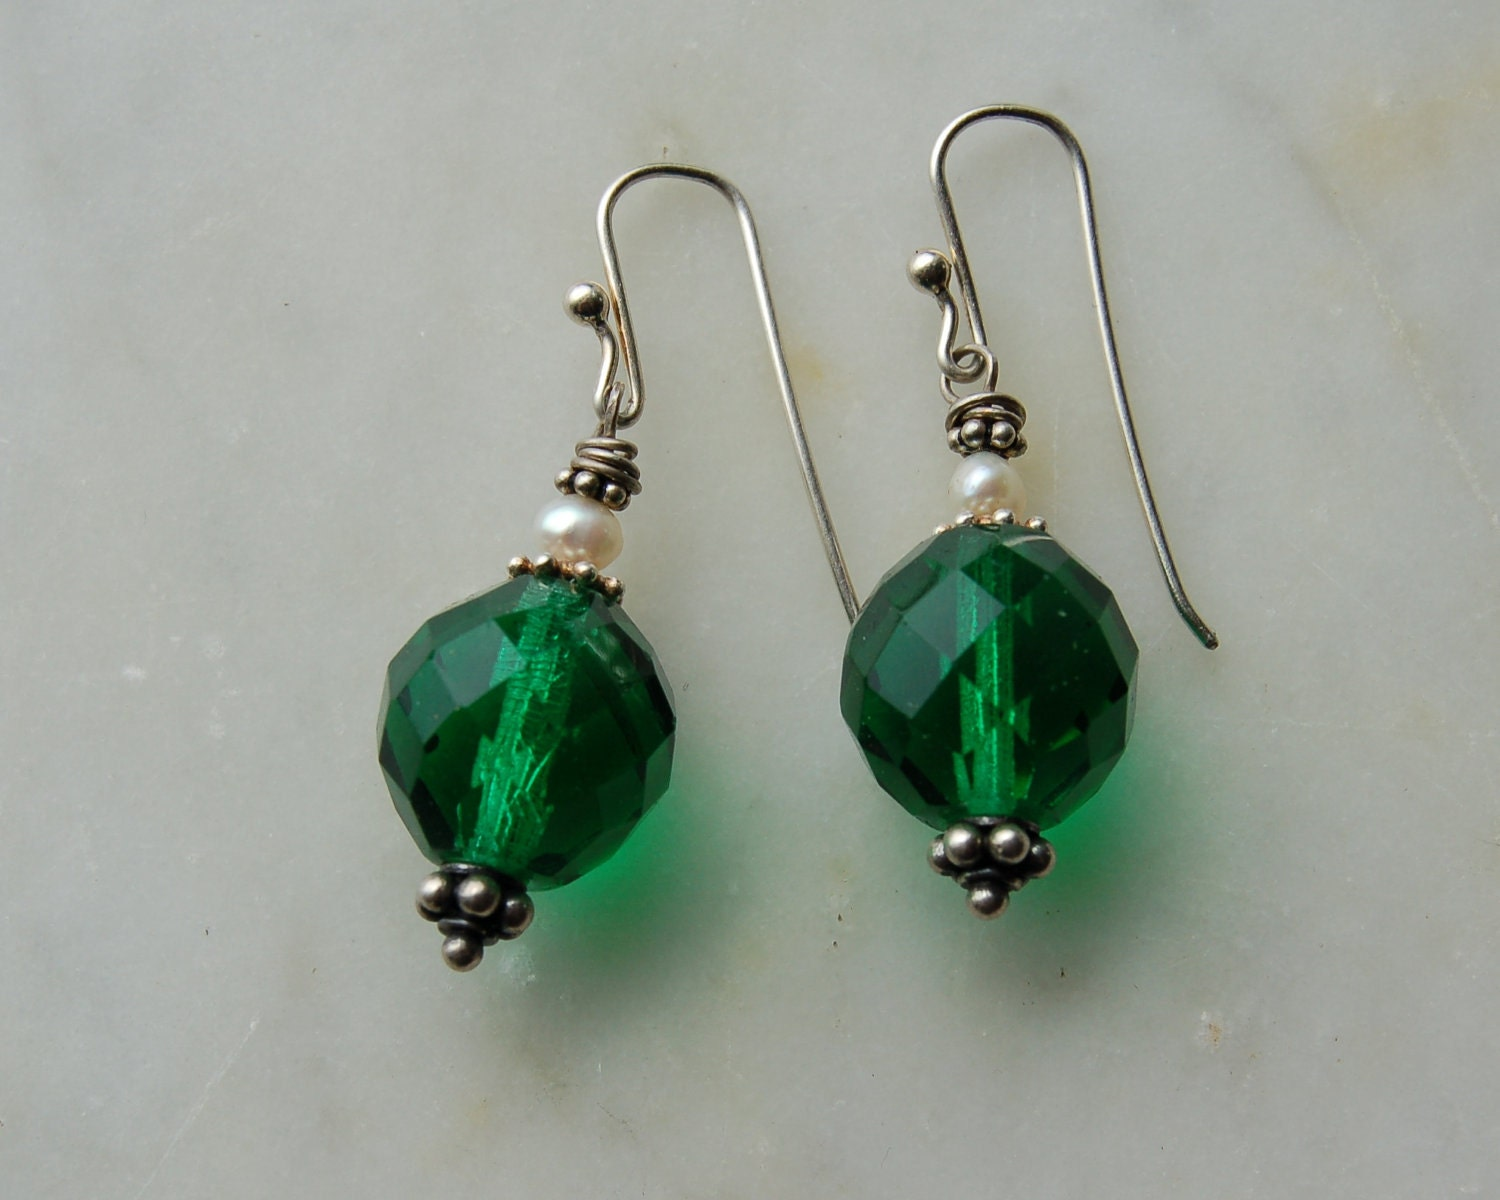 Vintage 1960s Swarovski Emerald green glass earrings with  freshwater pearls and handmade sterling earwires by Reneux - Reneux